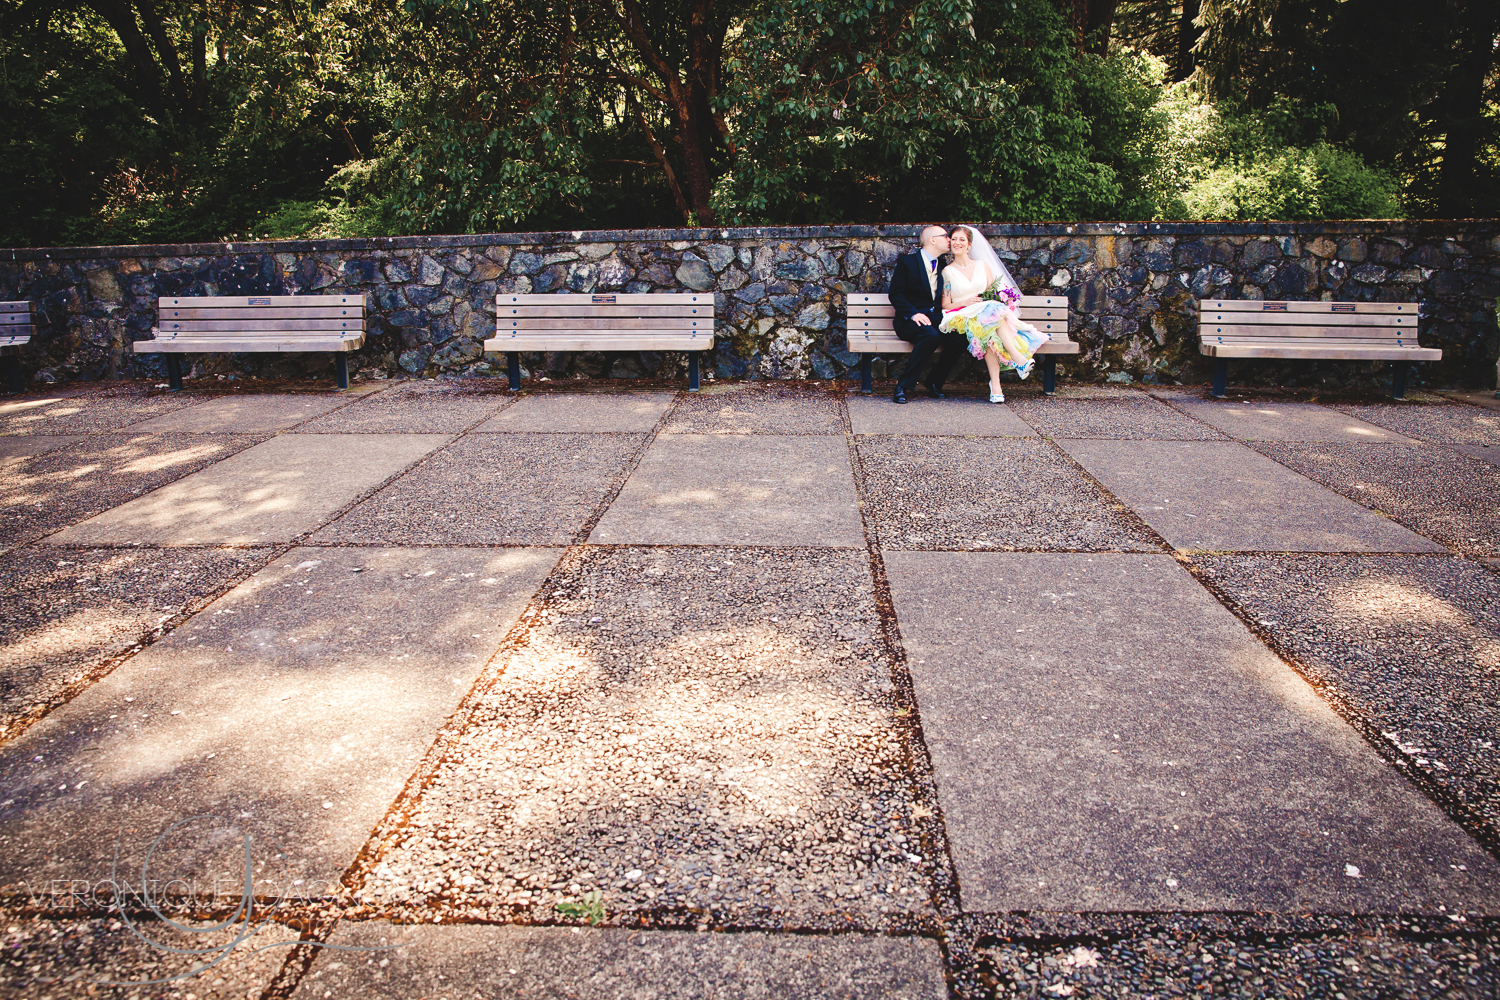 A kiss on the bench.